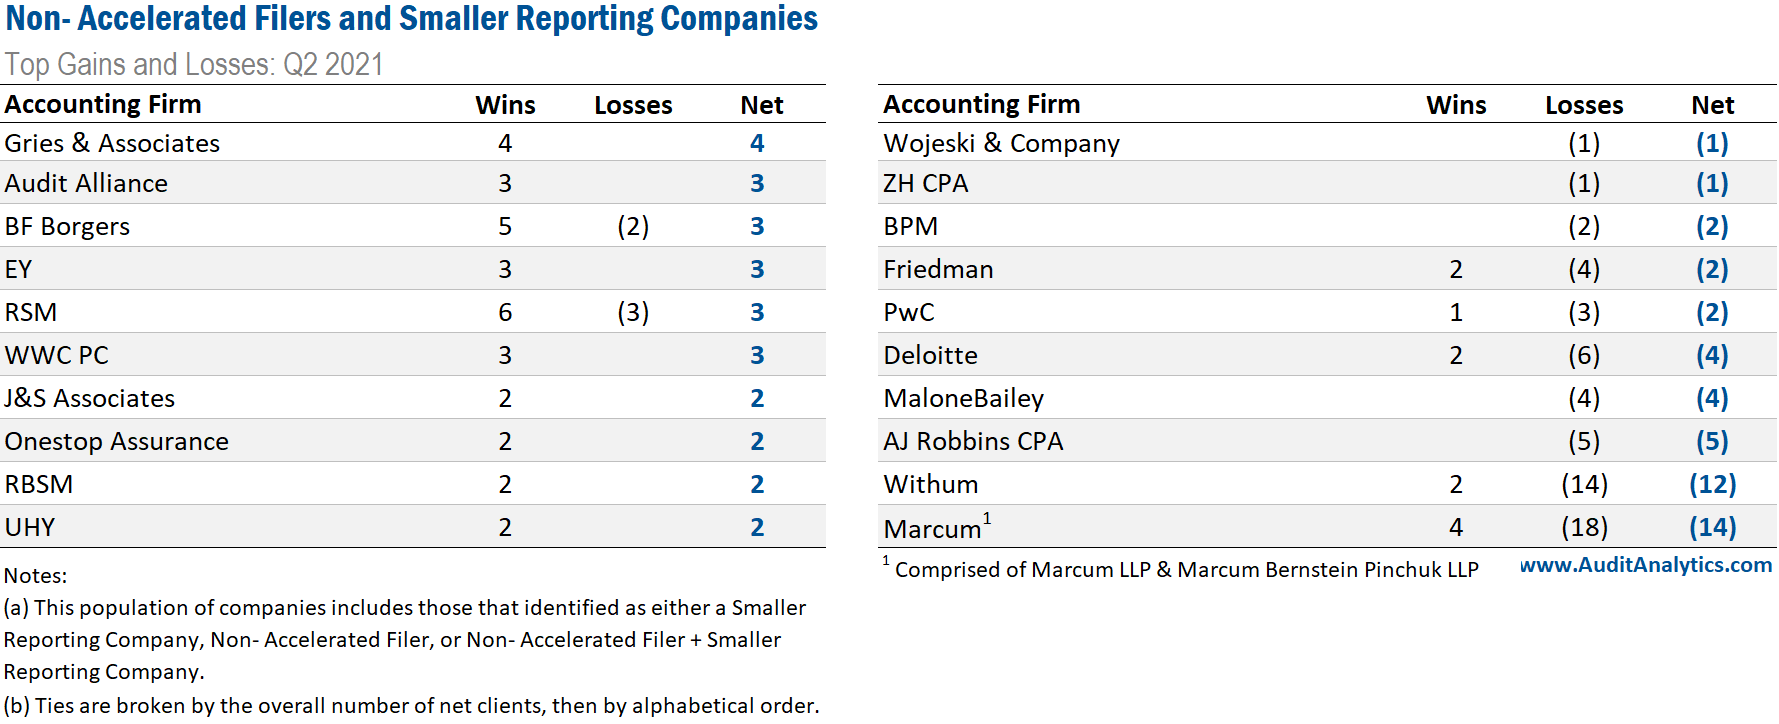 Non-Accelerated Filers and Smaller Reporting Companies: Top Gains and Losses Q2 2021